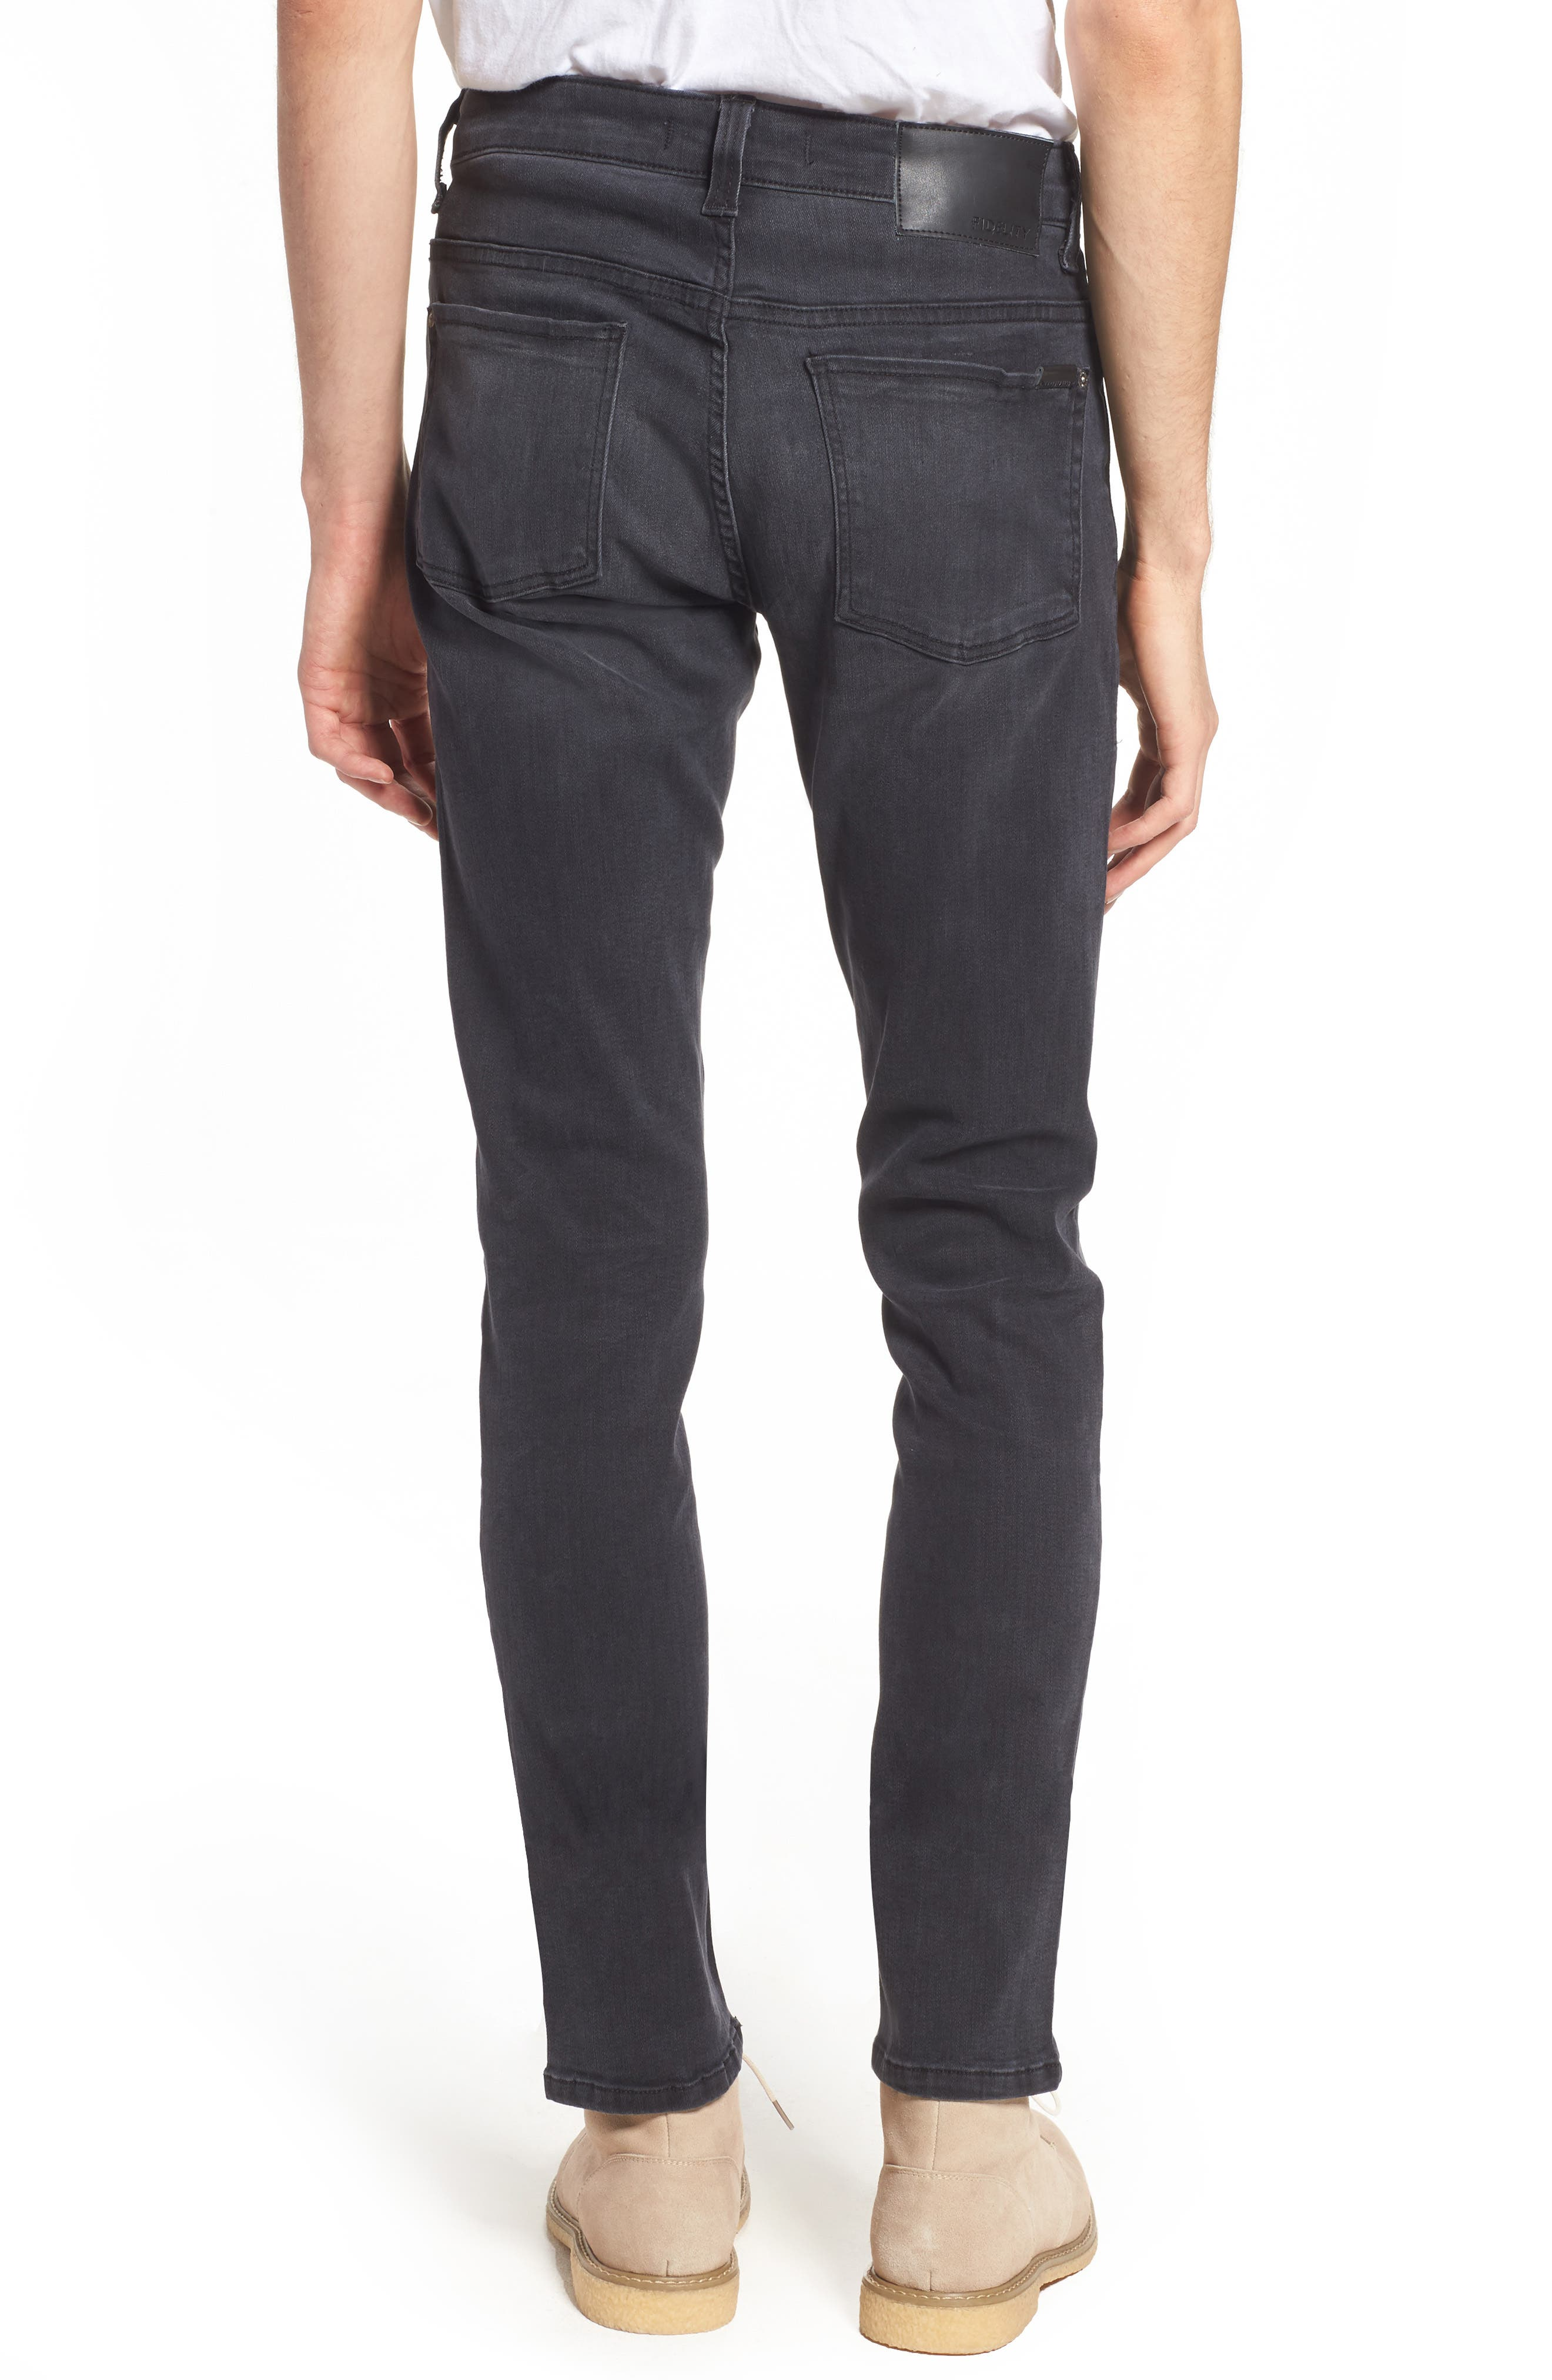 Vantage Skinny Fit Jeans,                             Alternate thumbnail 2, color,                             WOLF GREY